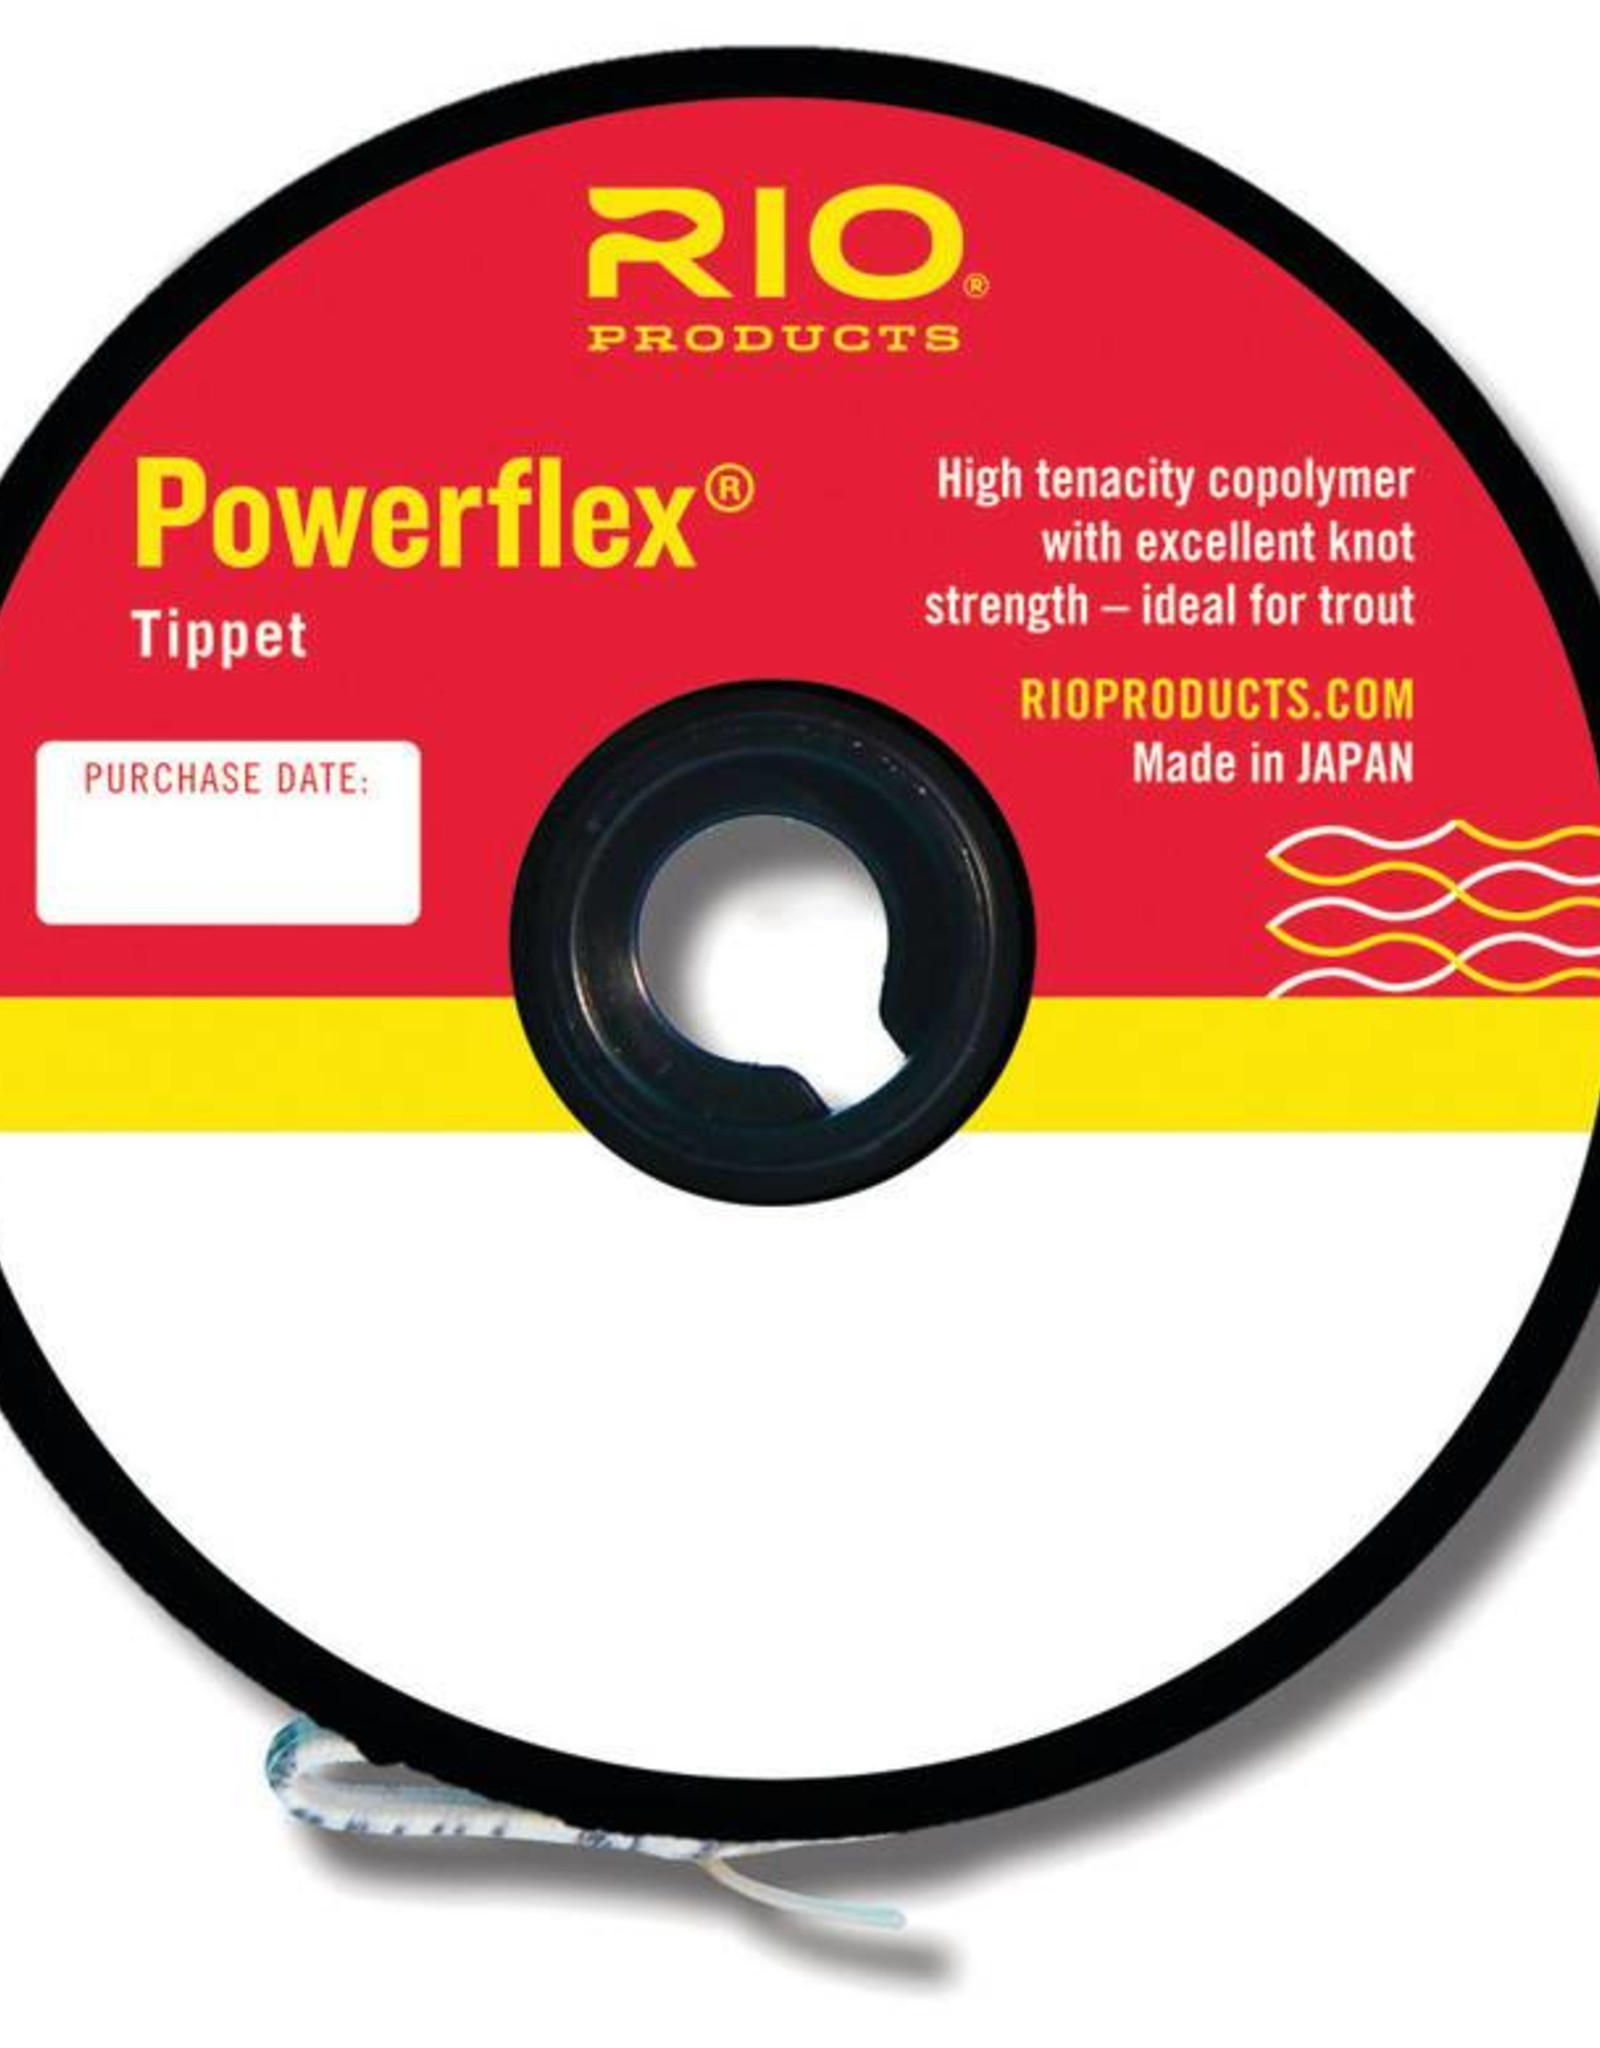 Rio Products Powerflex Tippet